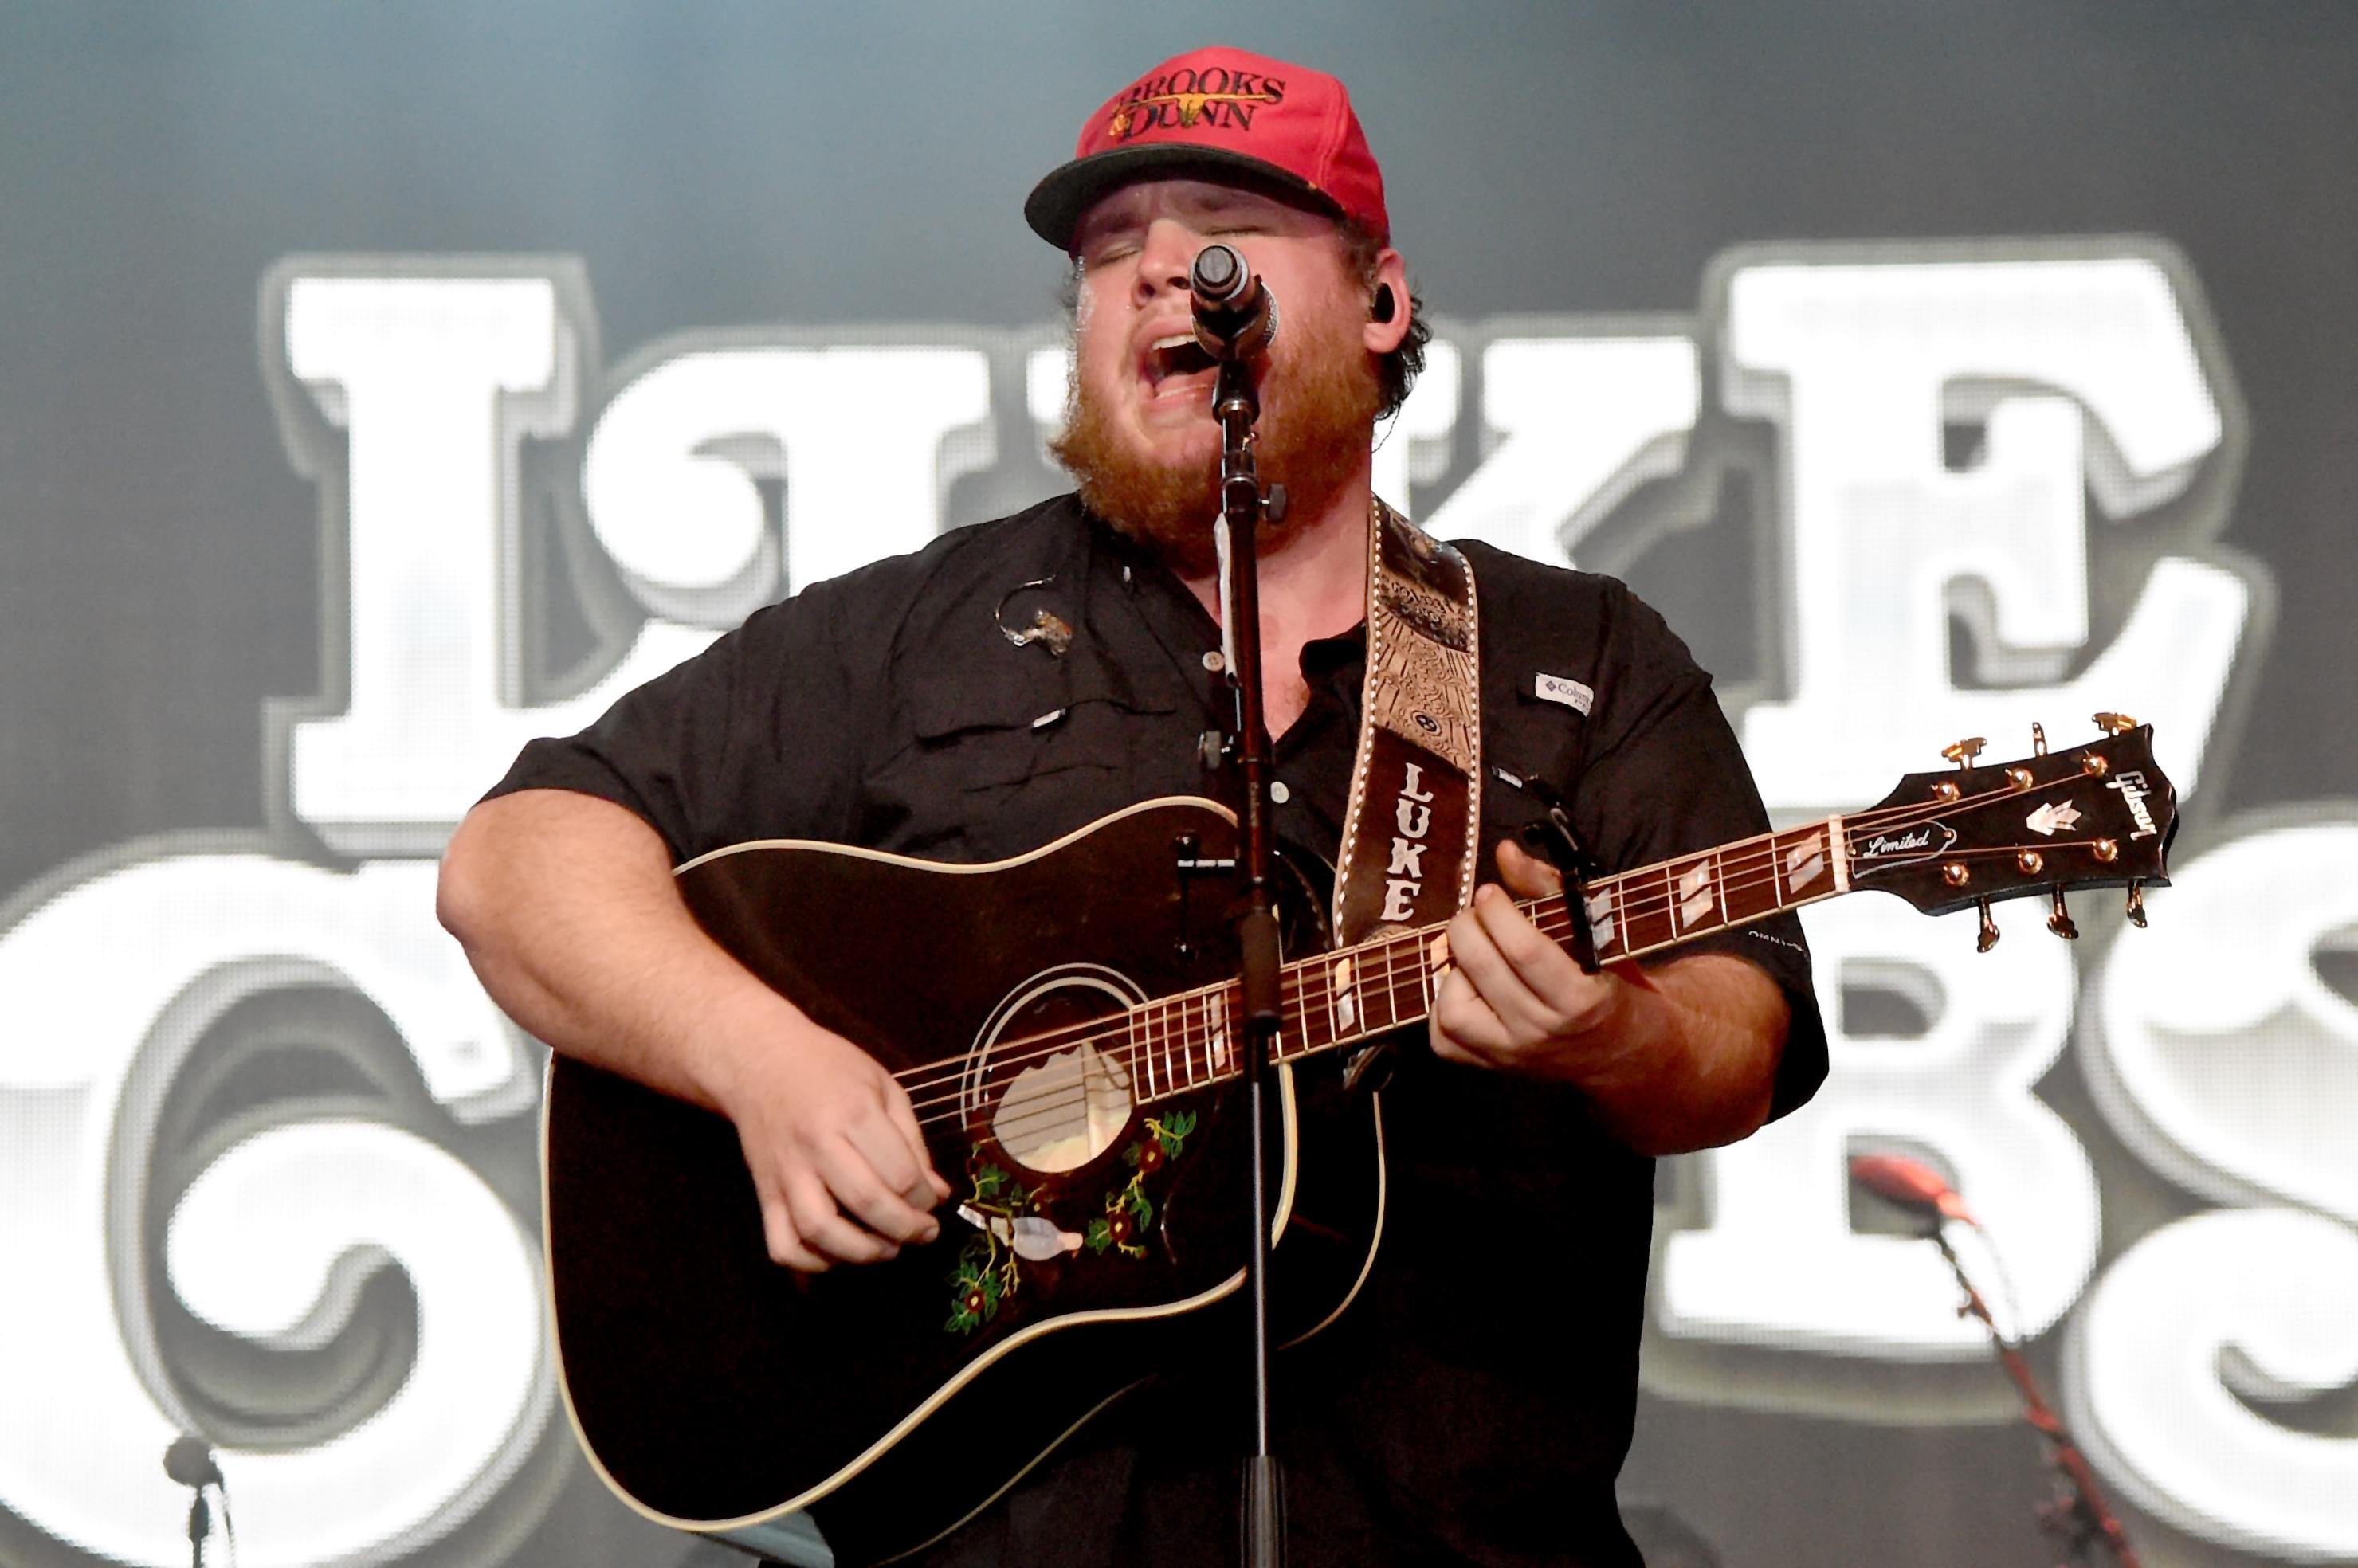 Luke Combs Teams Up With Crocs For Limited Edition Clogs